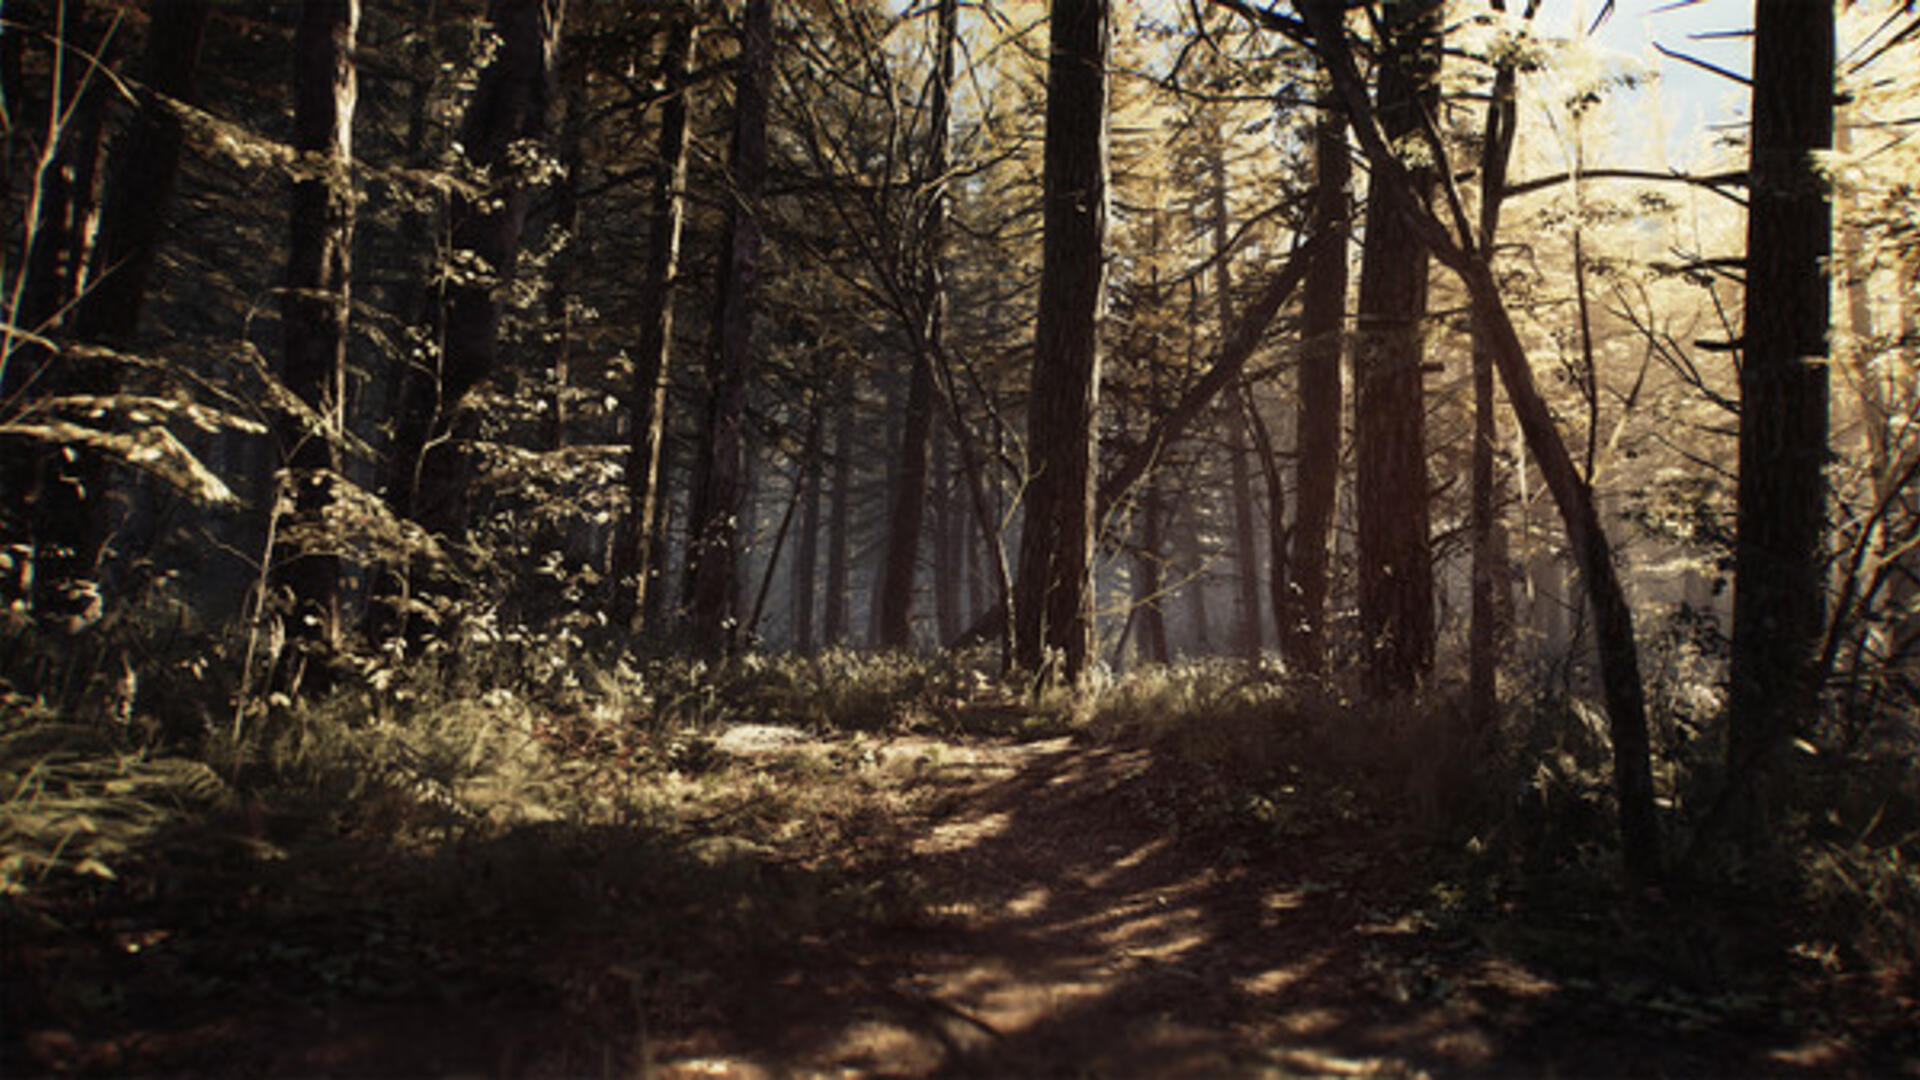 Blair Witch Game Endings: How to Get the Good, Bad and Secret Endings